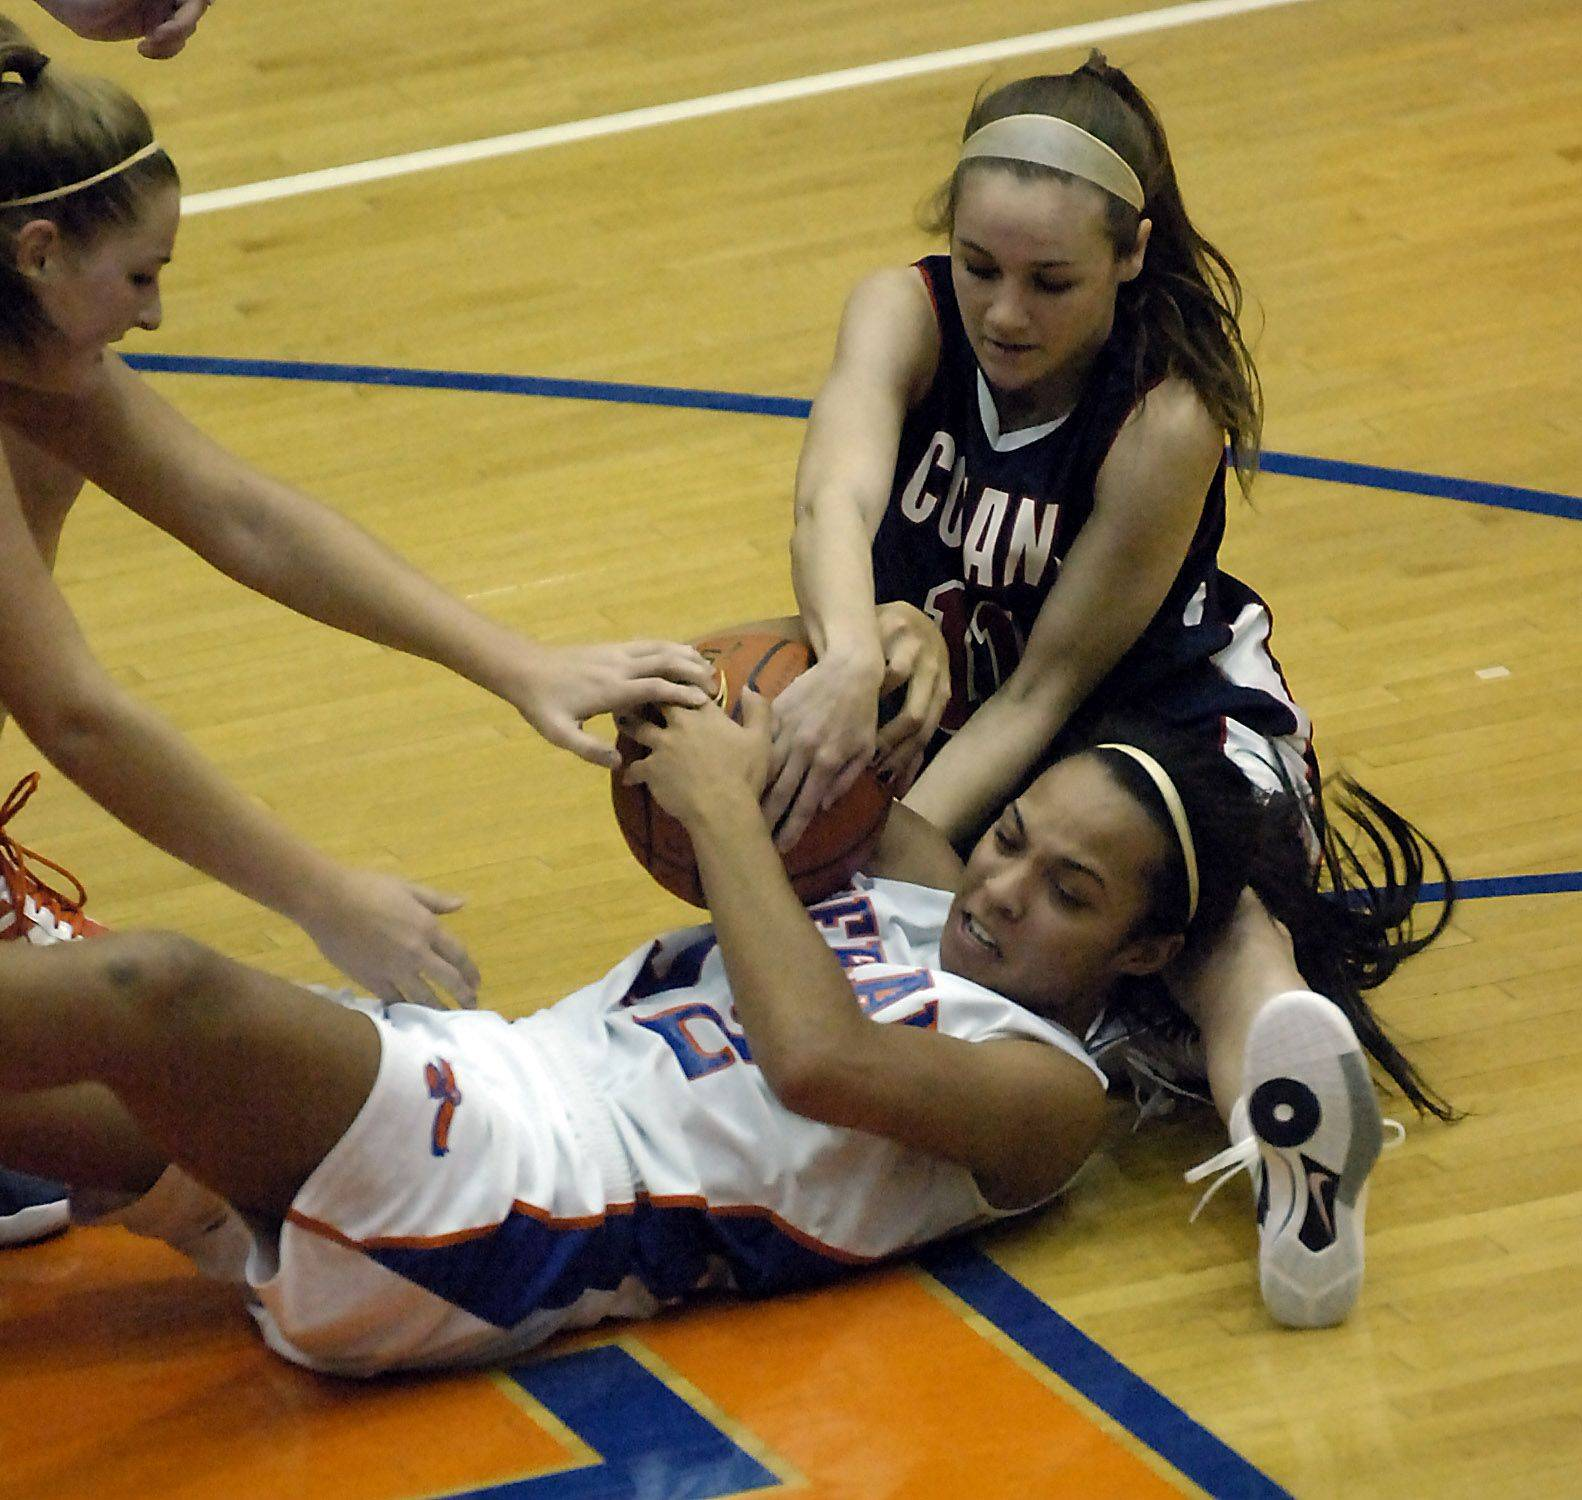 Conant's Hailey Andress and Hoffman Estates' Jada Stotts battle for the ball Friday.